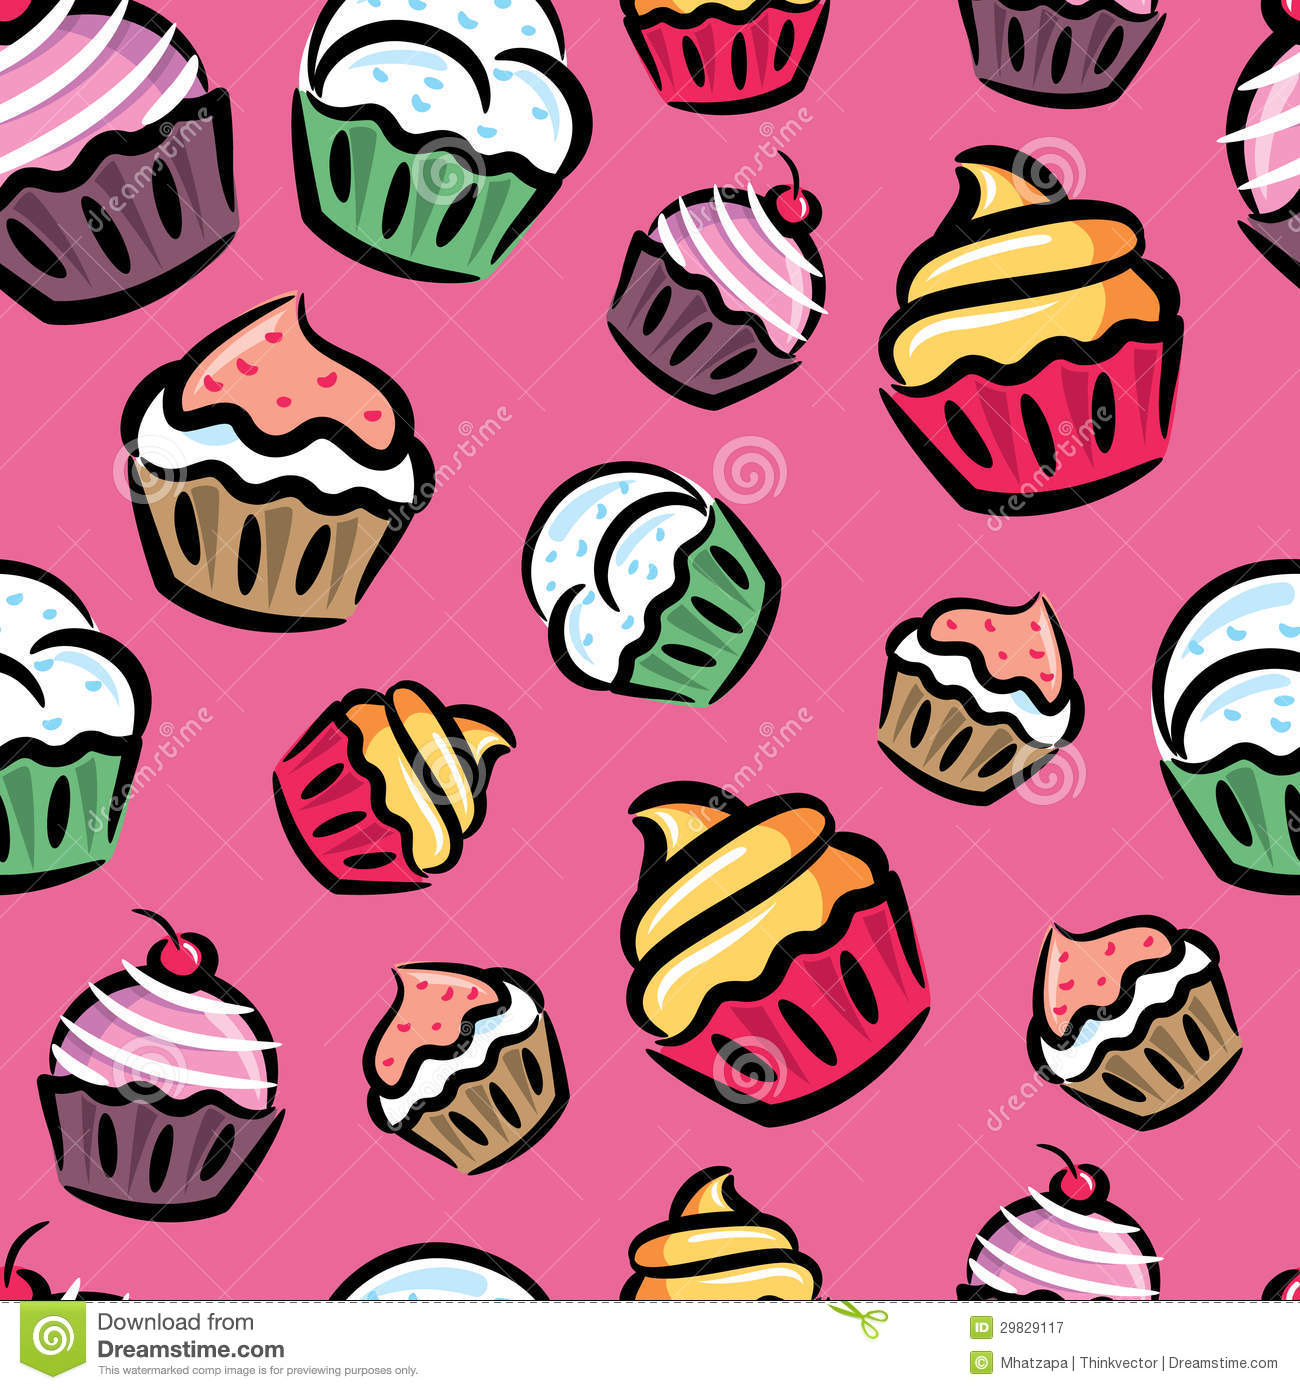 cupcake background clipart panda free clipart images cupcake background clipart panda free clipart images